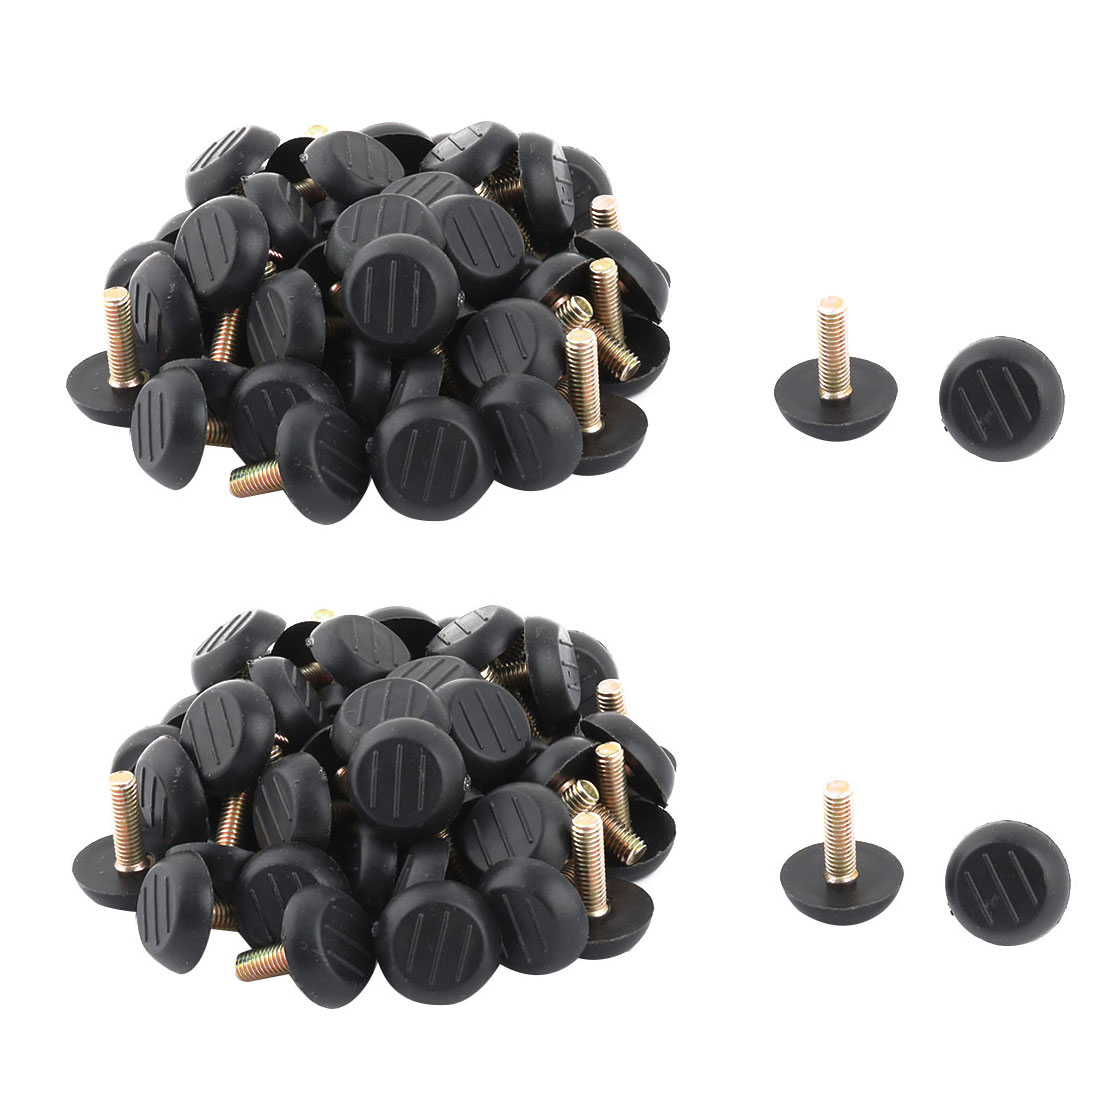 School Plastic Base Adjustable Non-slip Furniture Leg Fitting Leveling Foot 100pcs